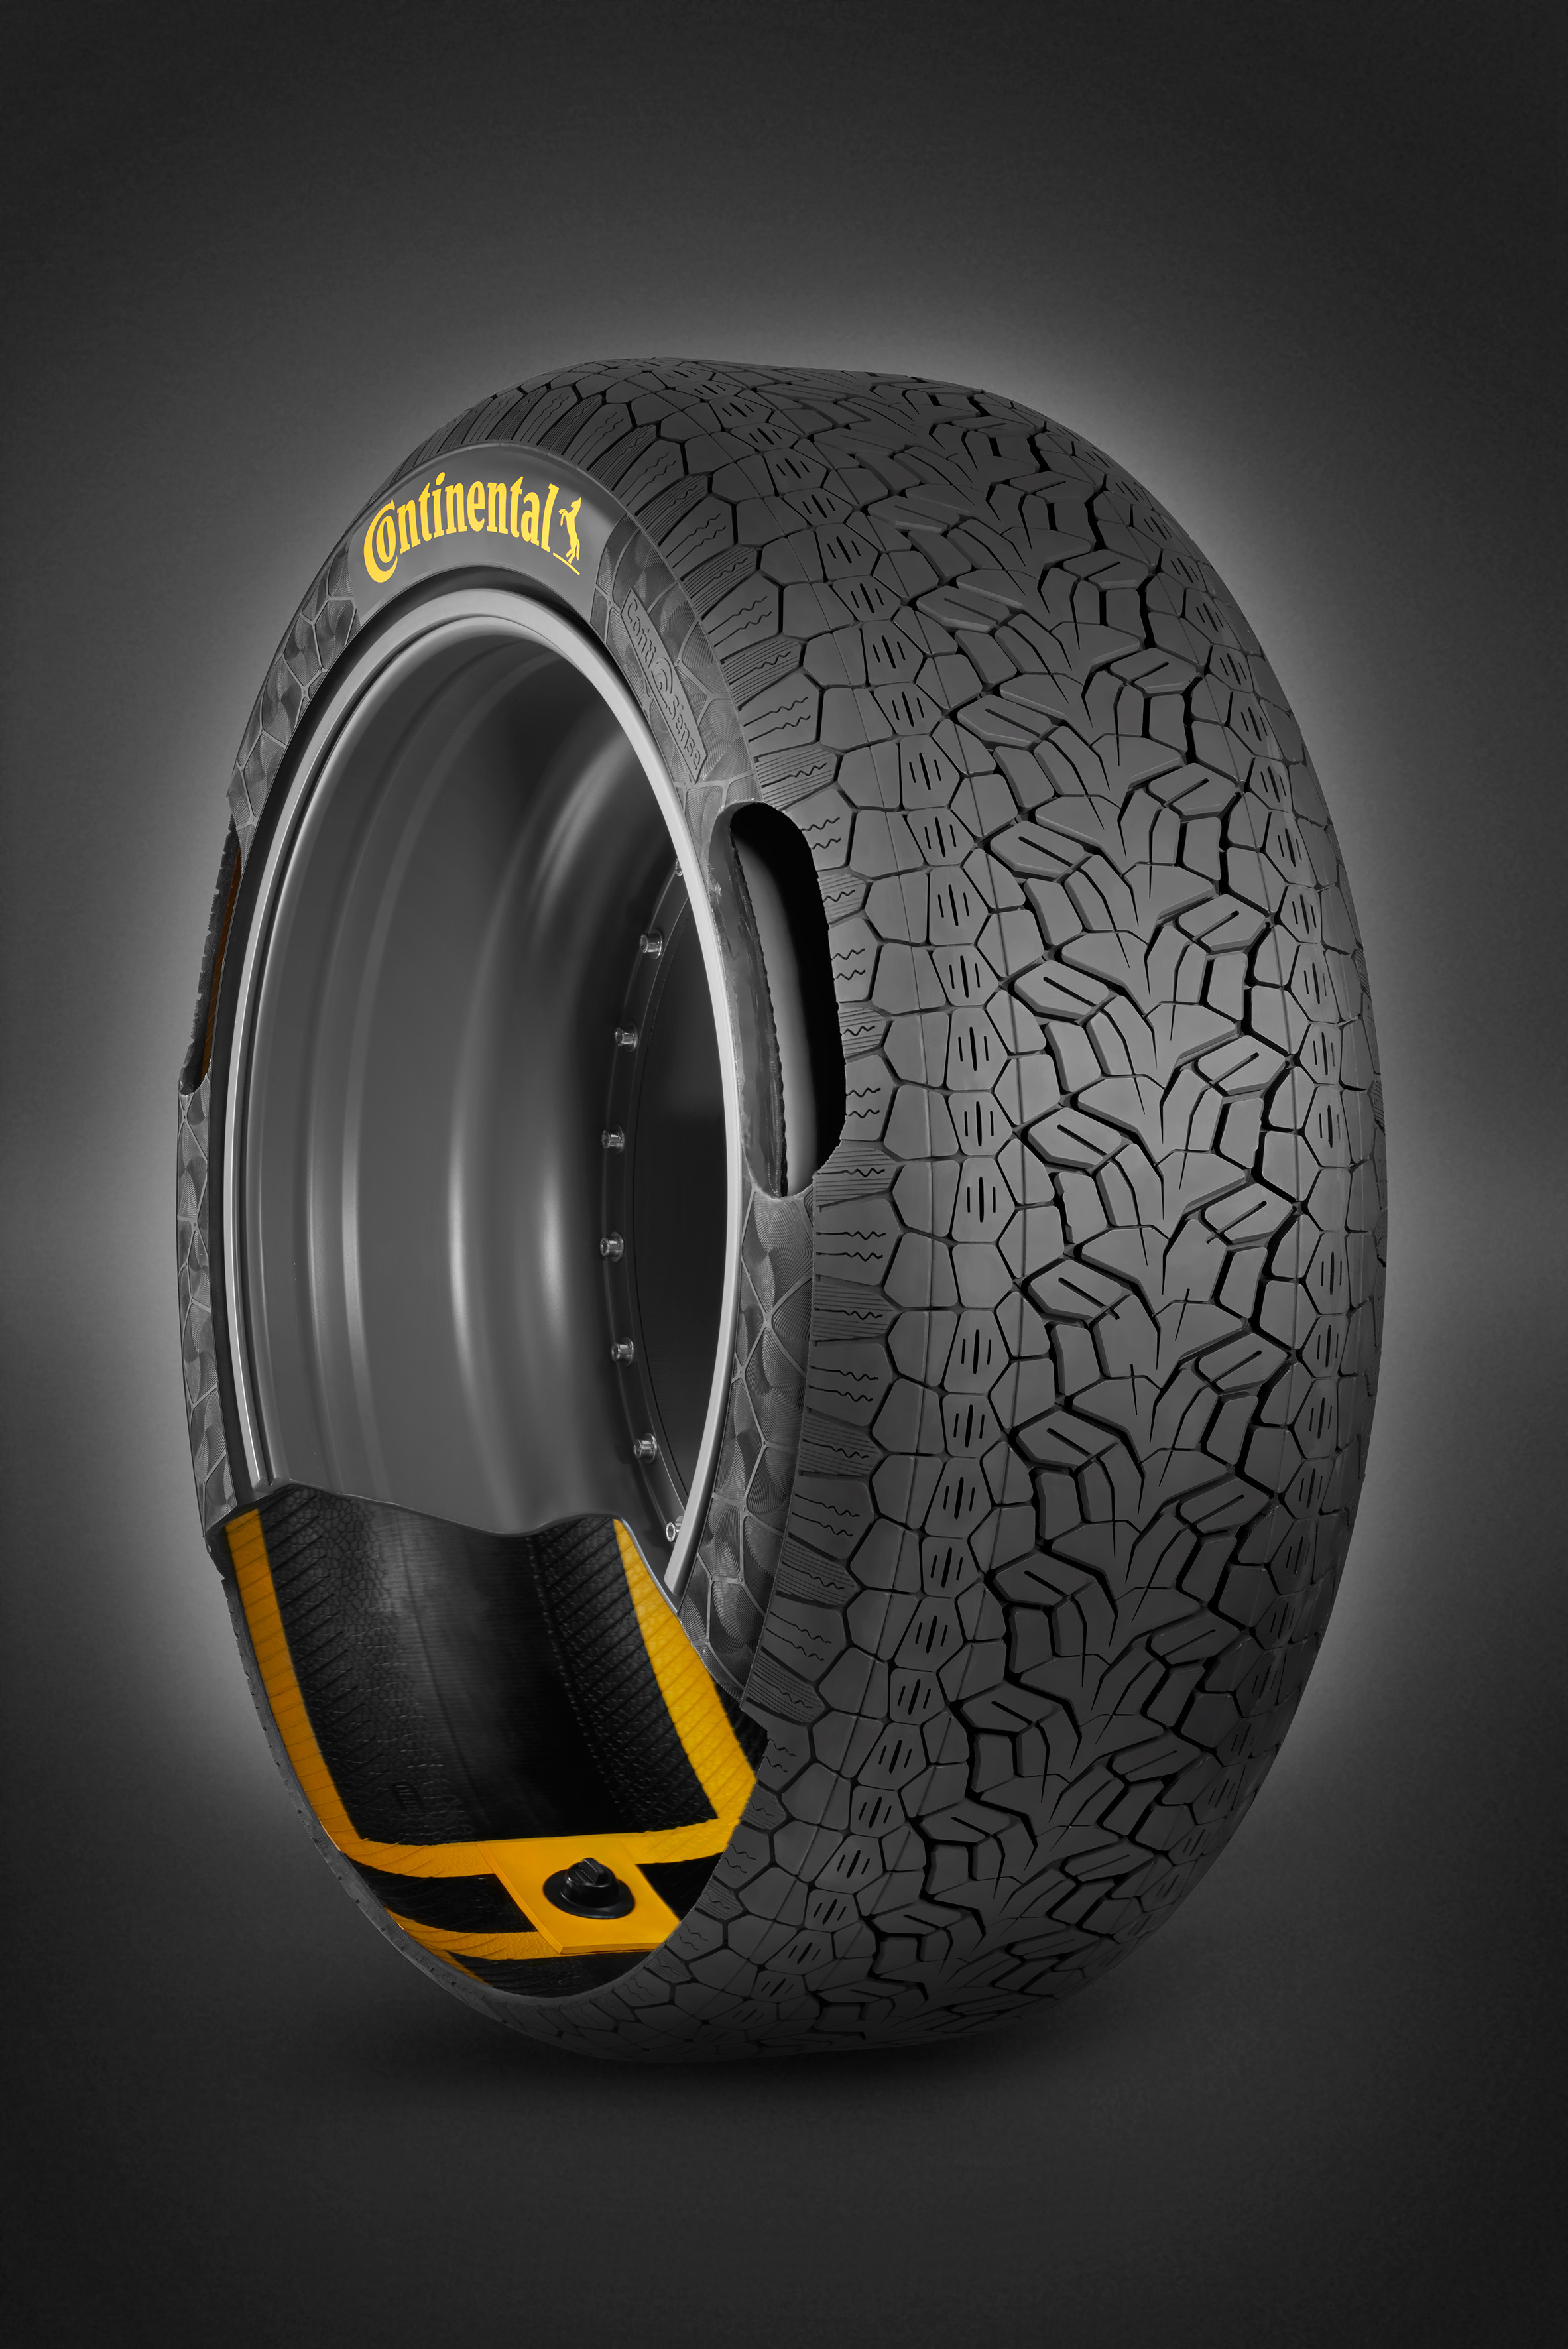 Continental ContiSense smart tires